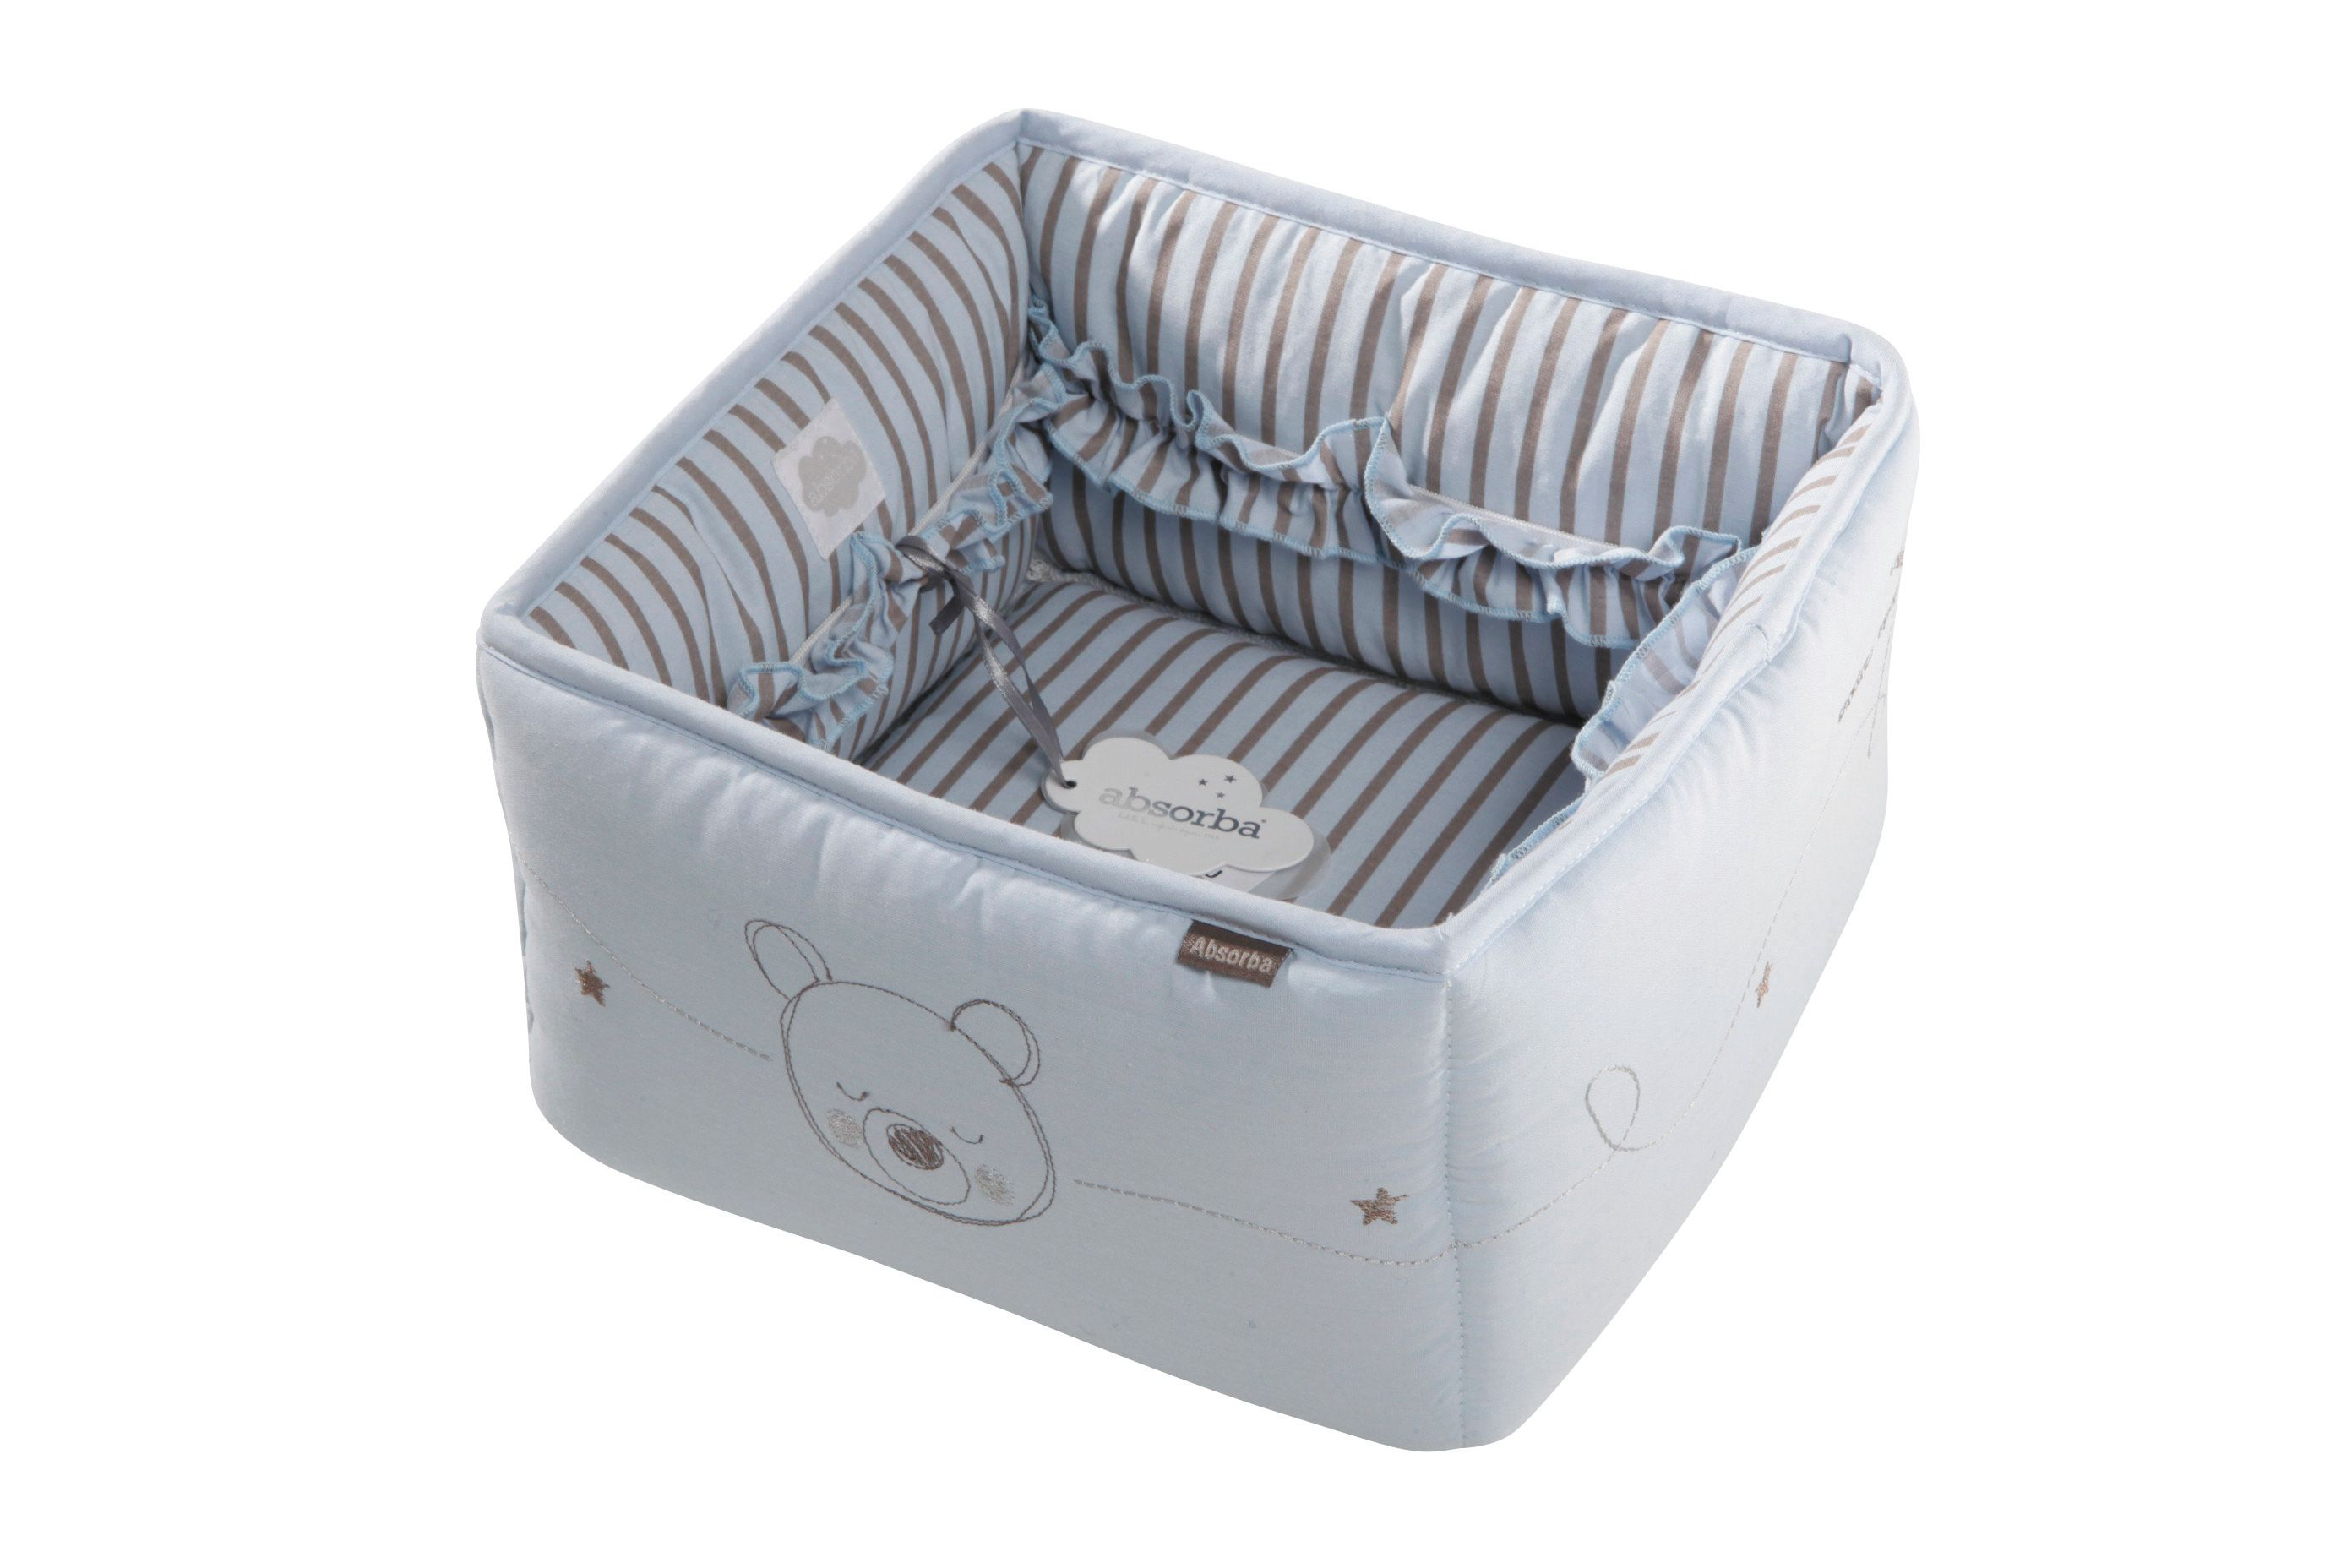 Image of Absorba Nursery basket